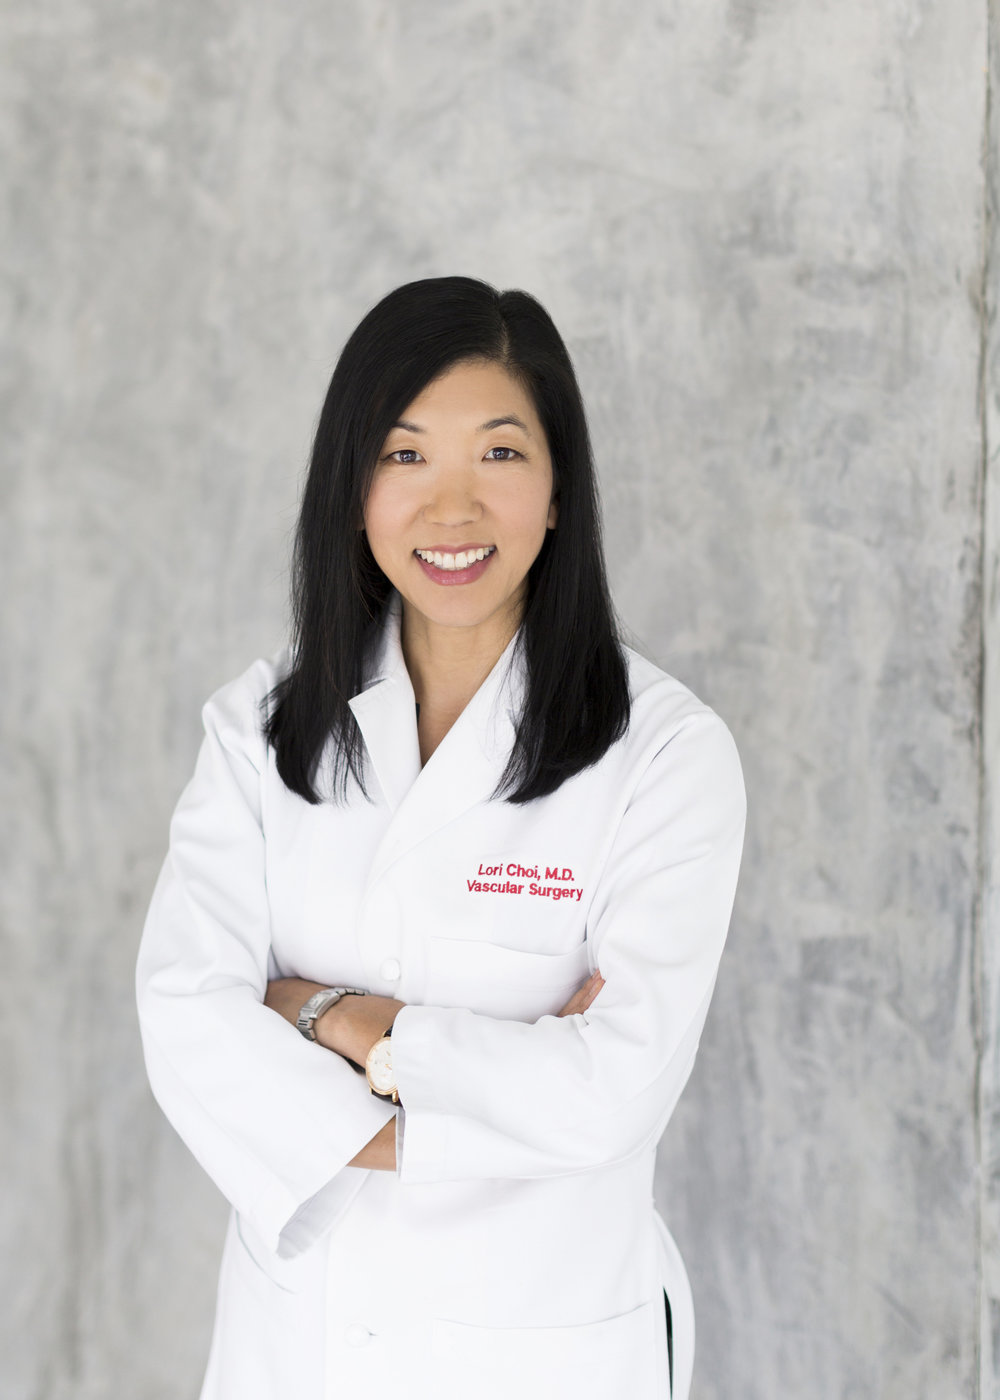 What I love about Dr. Lori Choi is that she's ready to talk with and for women about taking control of their health care through  I'll Have What She's Having .